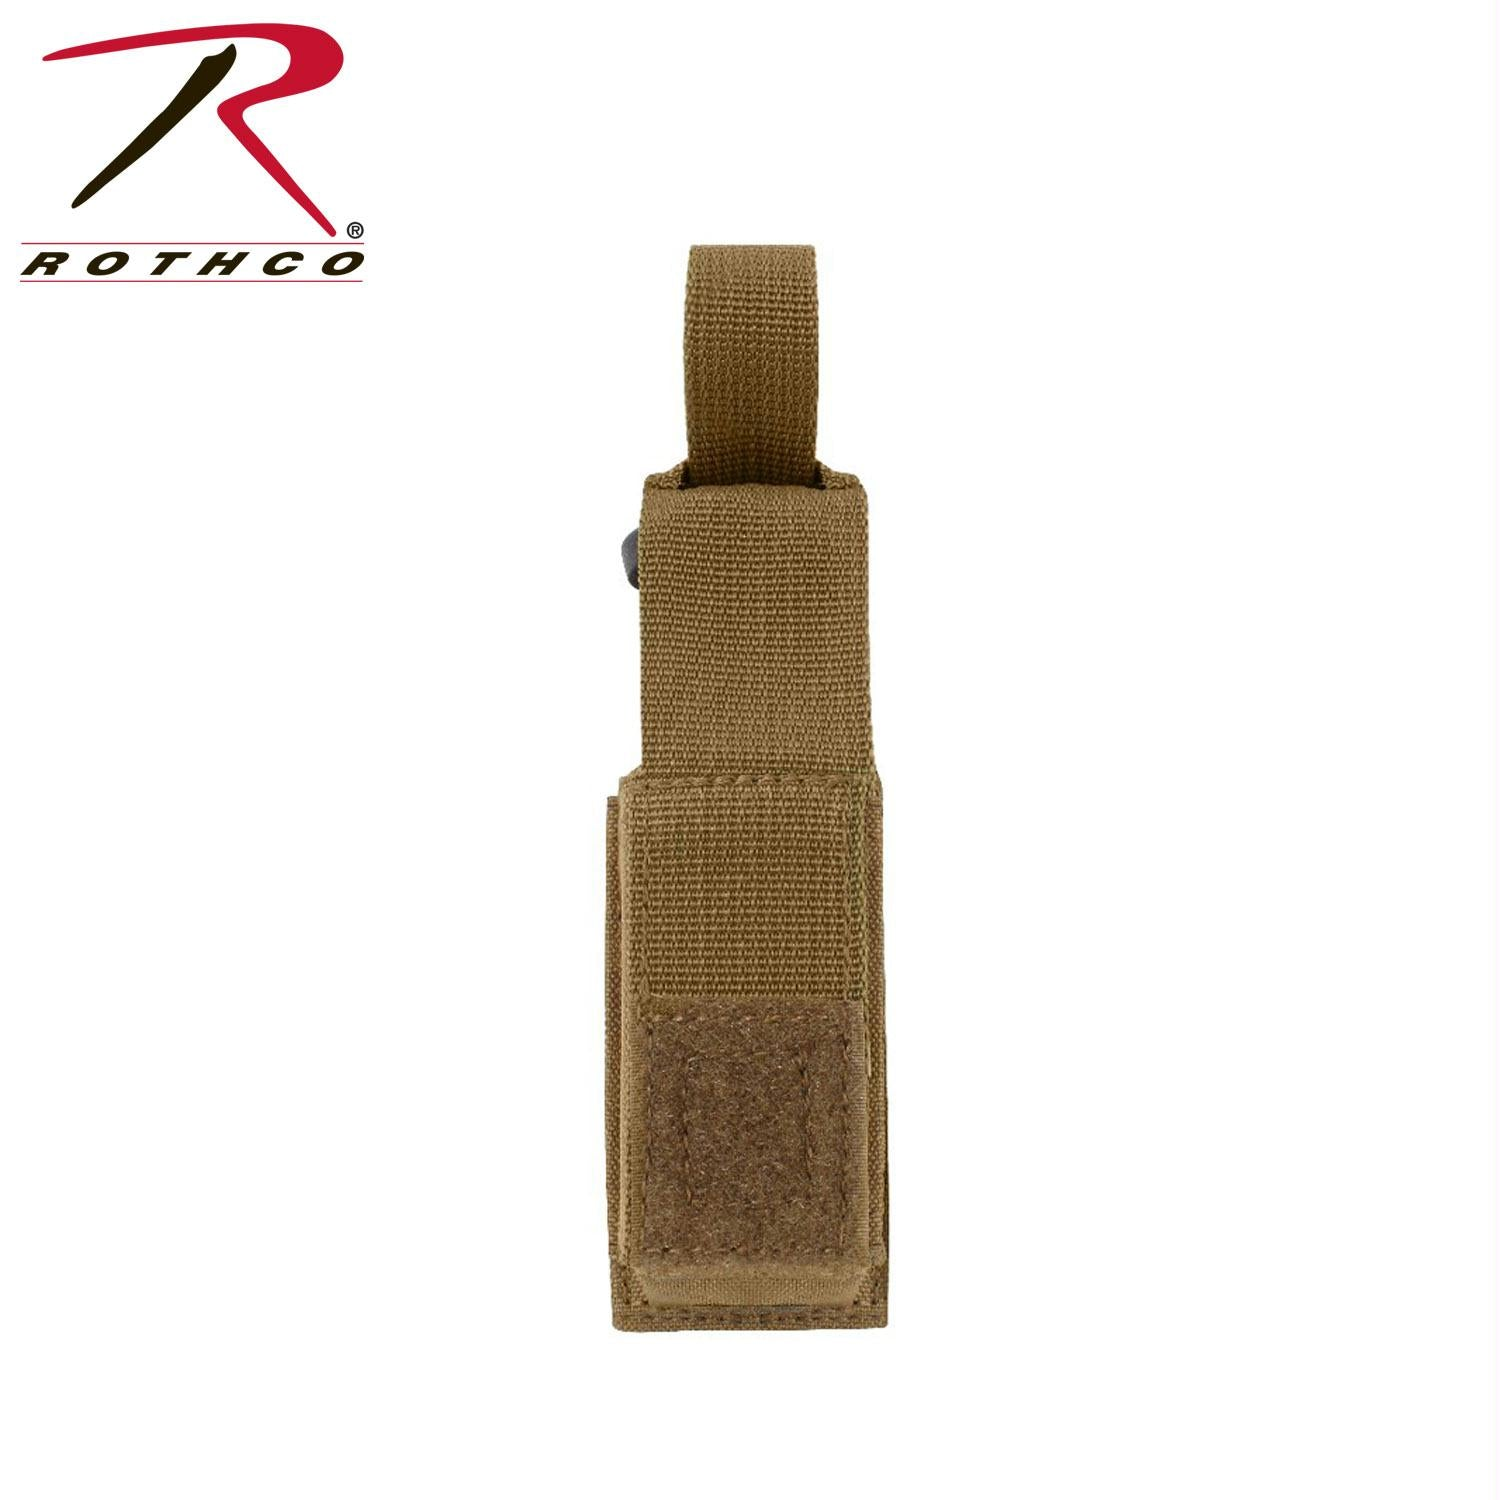 Rothco MOLLE Single Pistol Mag Pouch - Coyote Brown